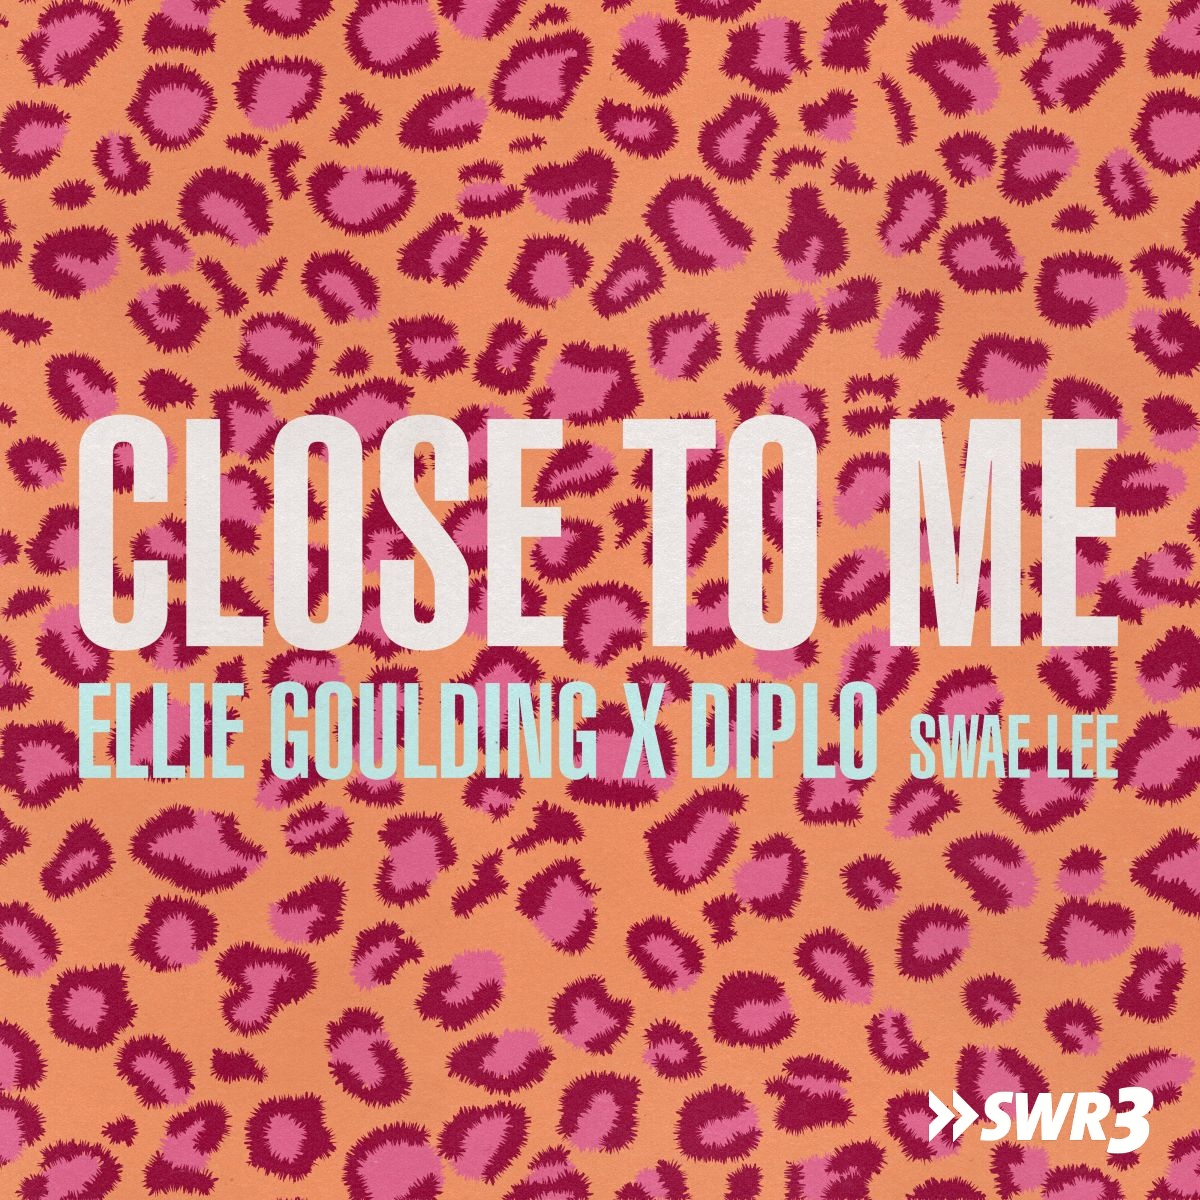 Close to me (Foto: Ellie Goulding)